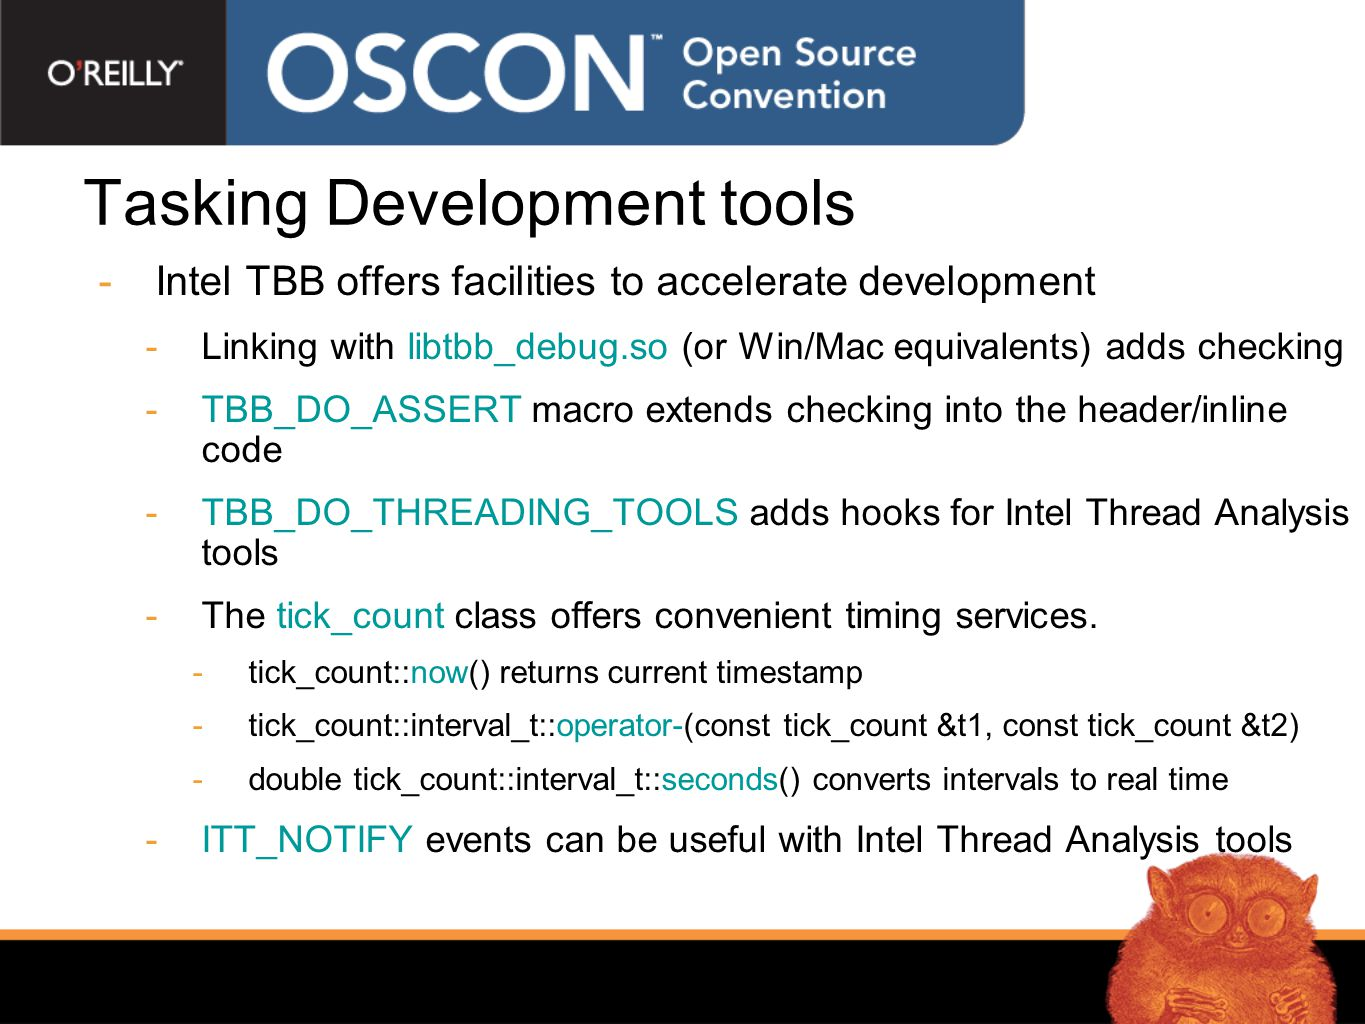 Tasking Development tools  Intel TBB offers facilities to accelerate development  Linking with libtbb_debug.so (or Win/Mac equivalents) adds checking  TBB_DO_ASSERT macro extends checking into the header/inline code  TBB_DO_THREADING_TOOLS adds hooks for Intel Thread Analysis tools  The tick_count class offers convenient timing services.